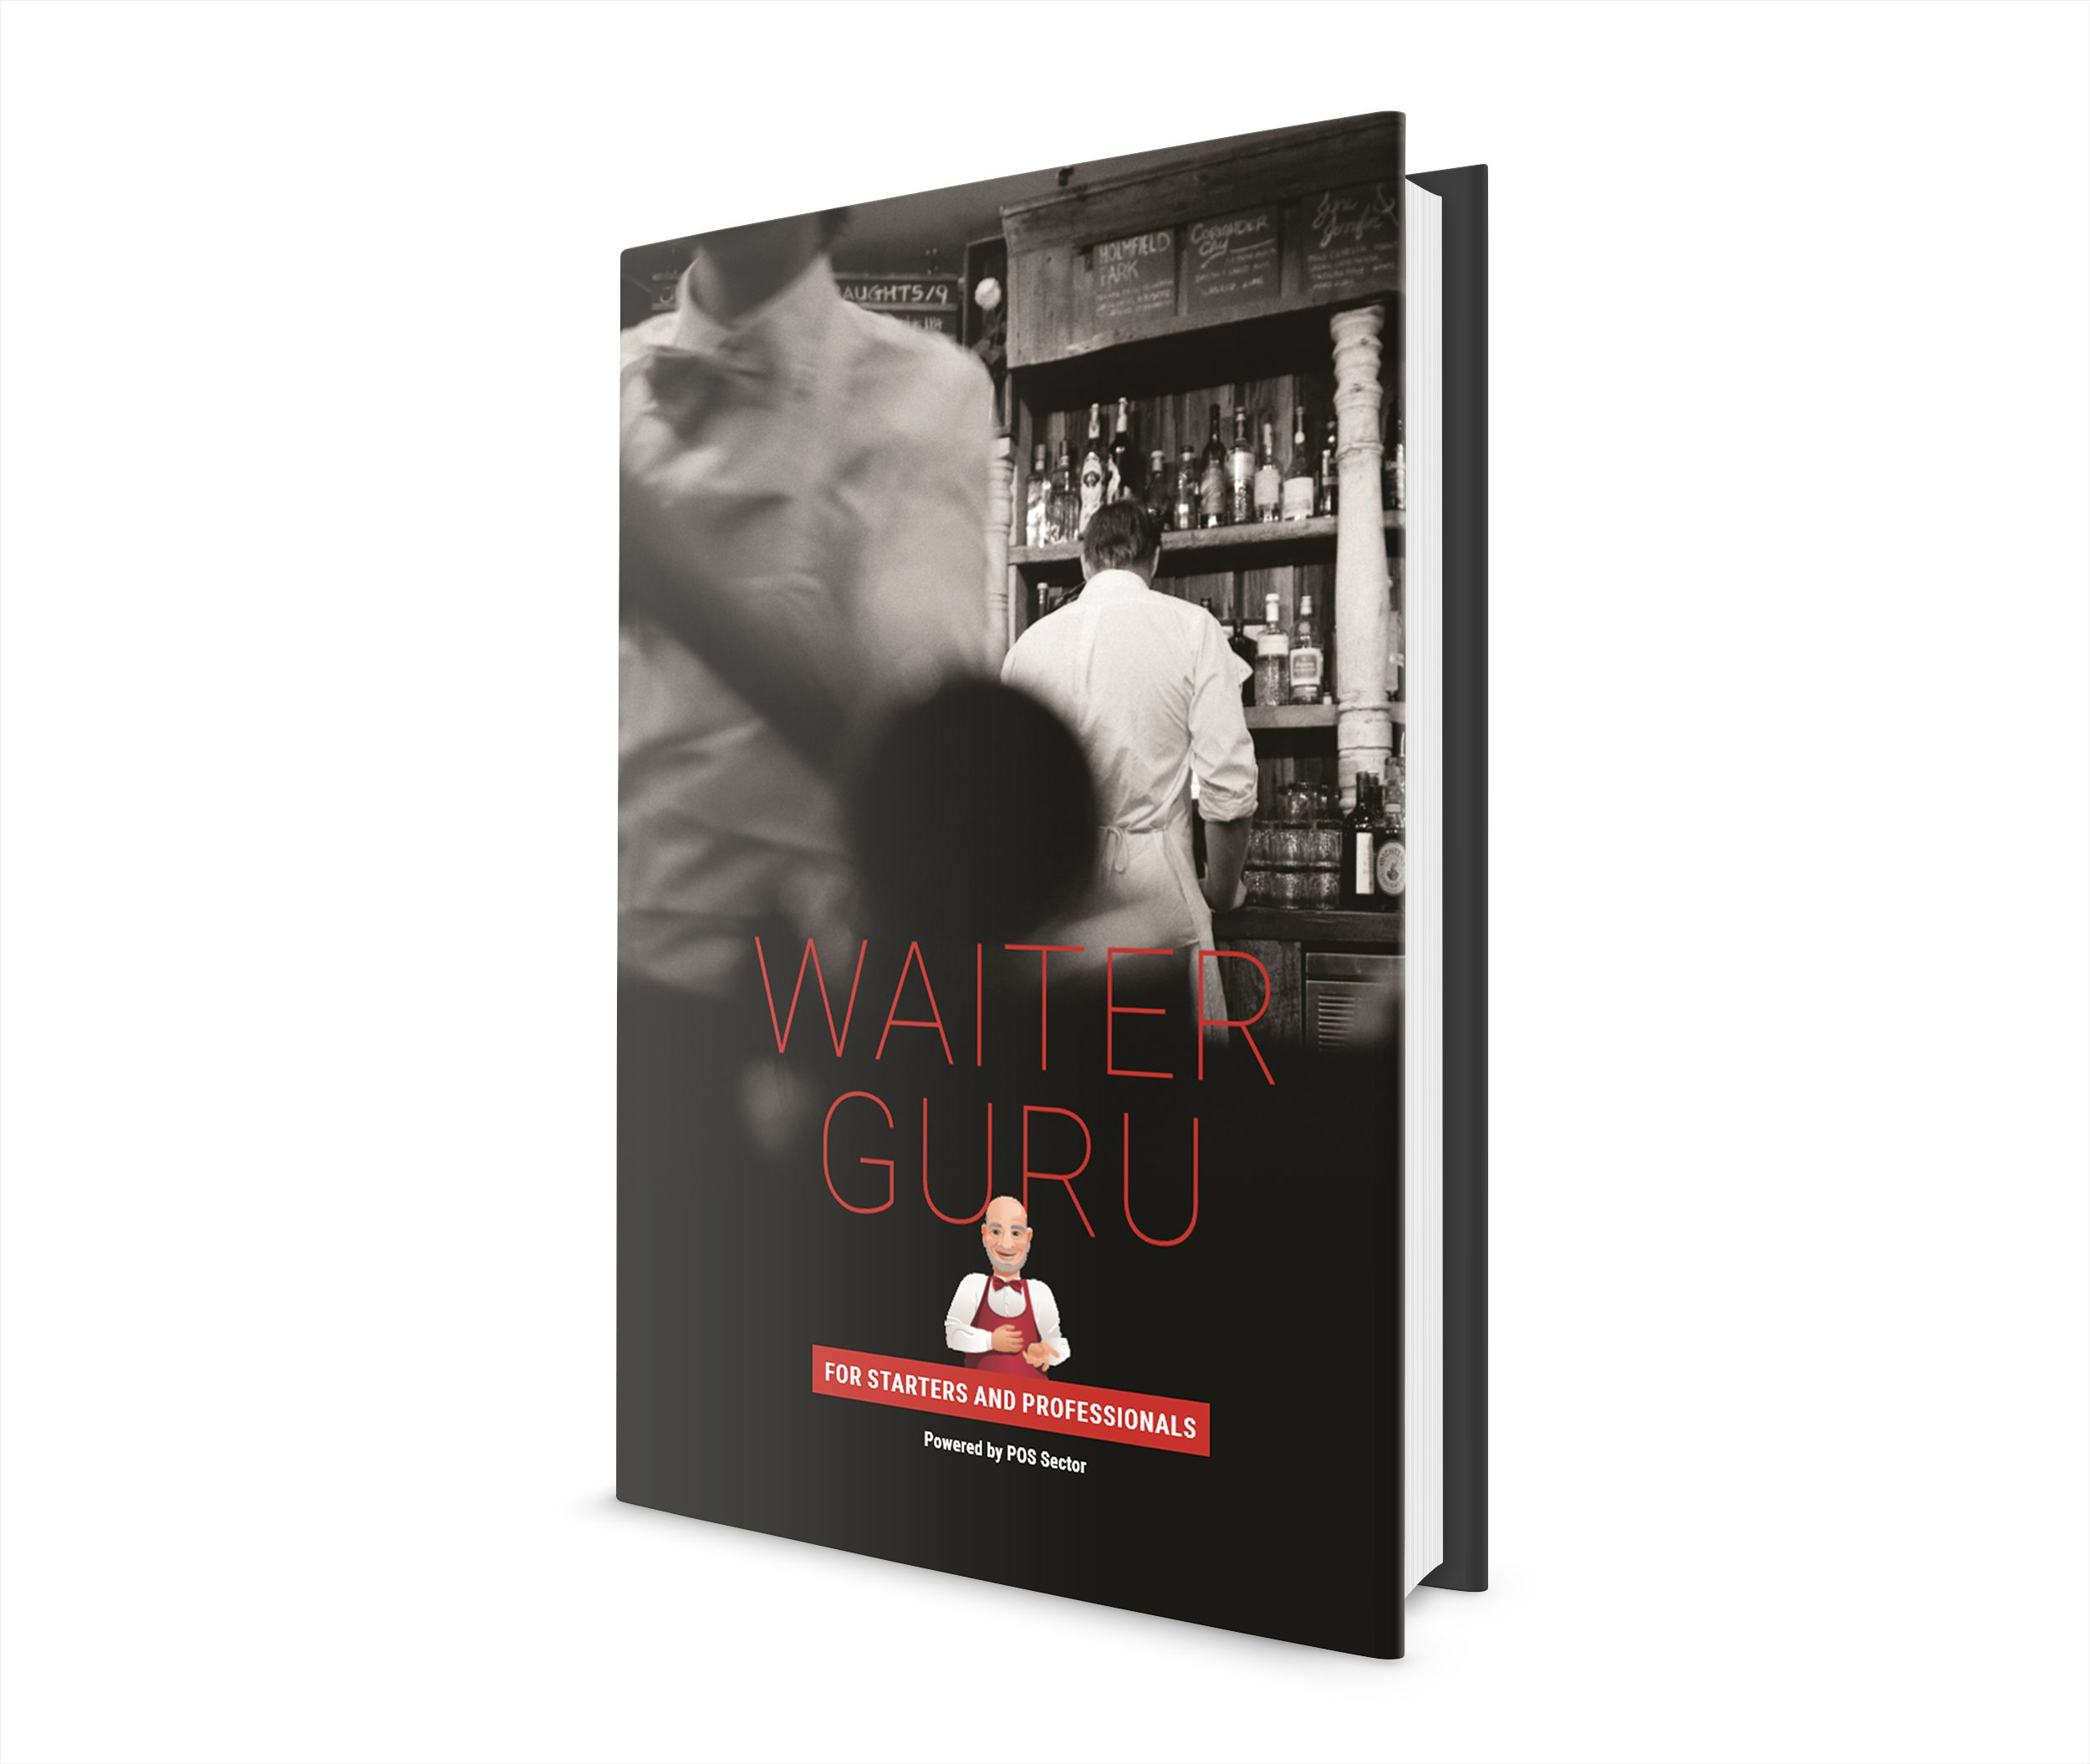 Waiter Guru Describes The Real Experiences And How To Deal With Daily  Problems In 21 Chapters And 56 Pages It Just Makes Many Things So Simple